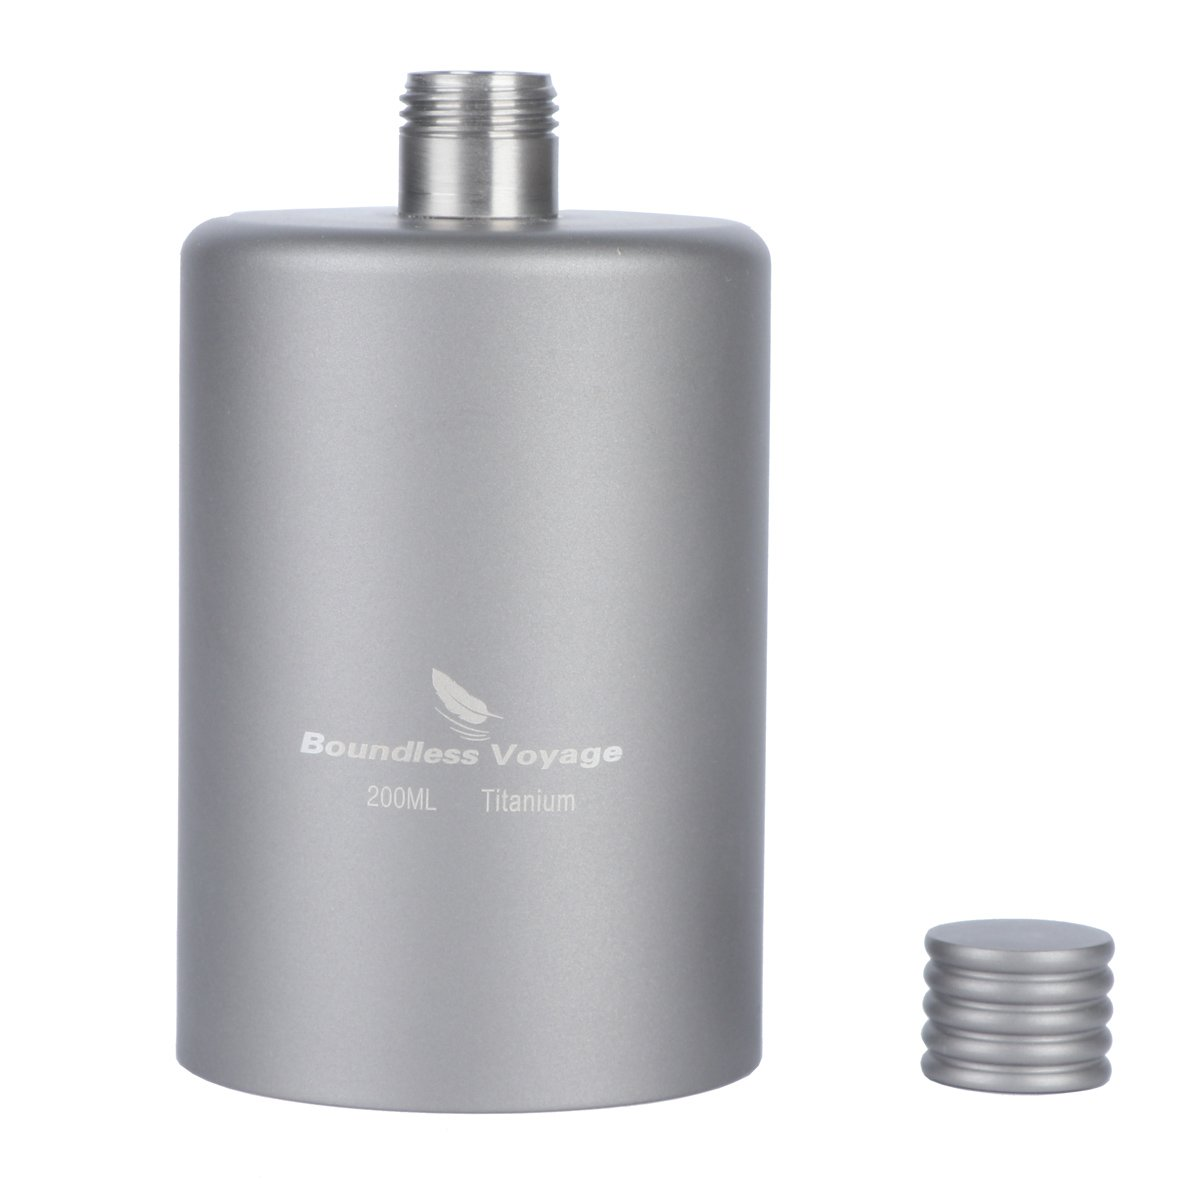 iBasingo 200ml Titanium Pocket Flagon Camping Portable Alcohol Bottle Drink Sports Outdoor Hip Flask Picnic Wine Bottle Ti1579I